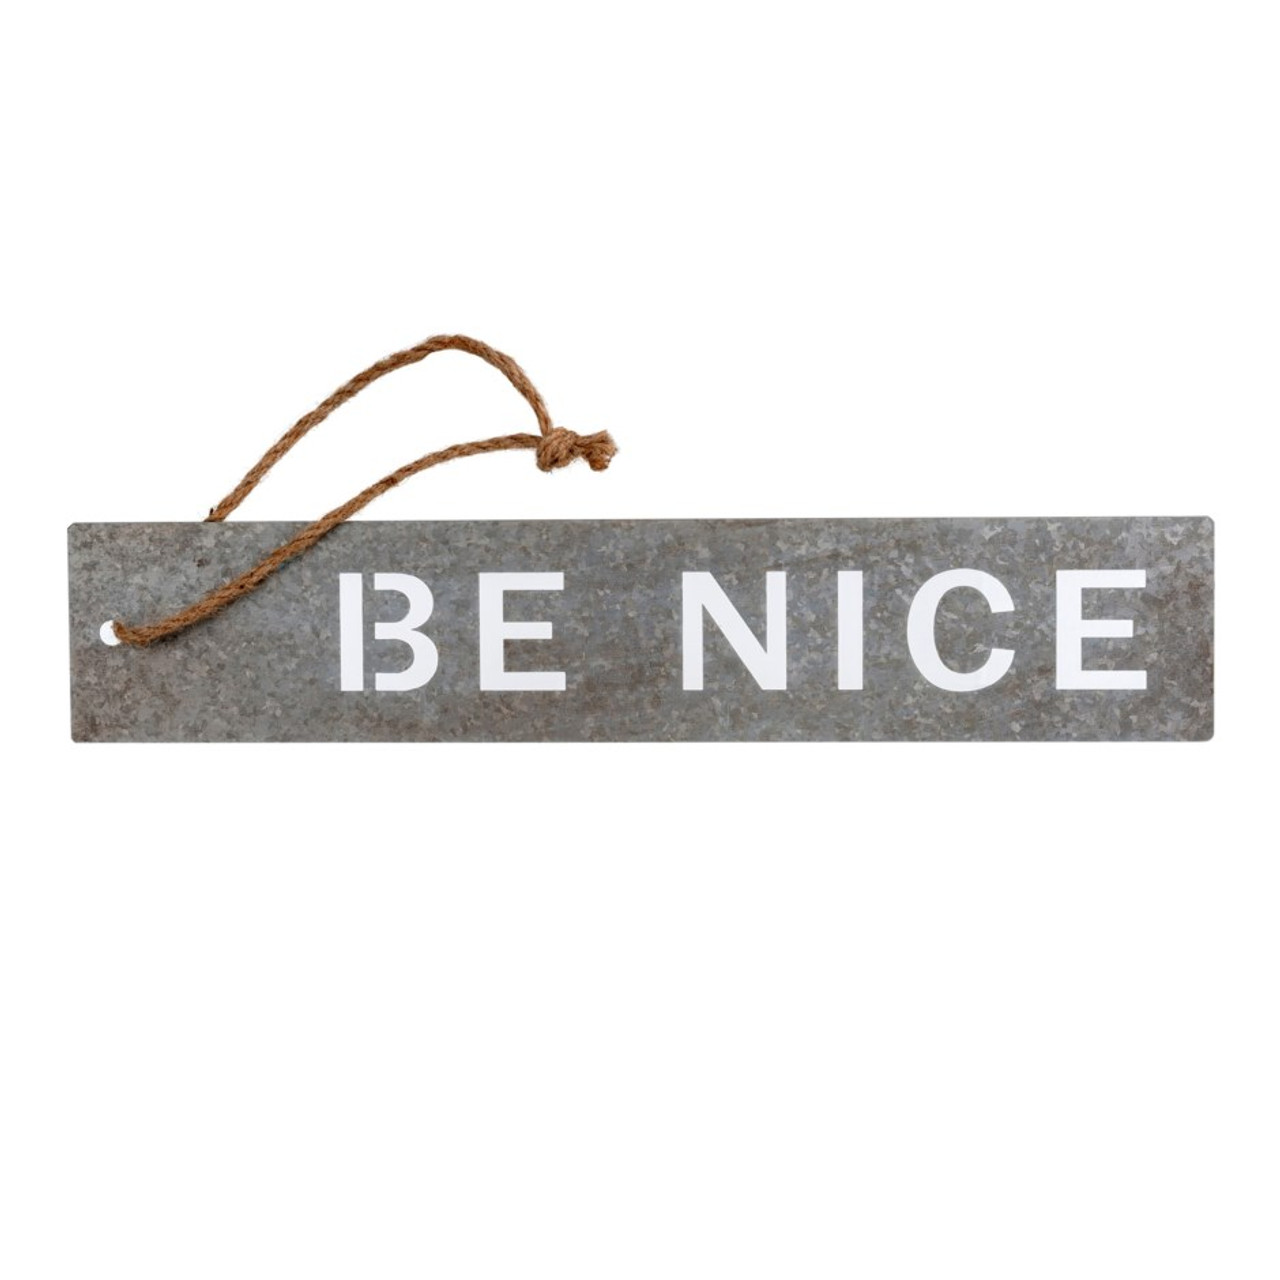 METAL MESSAGE SIGN - BE NICE